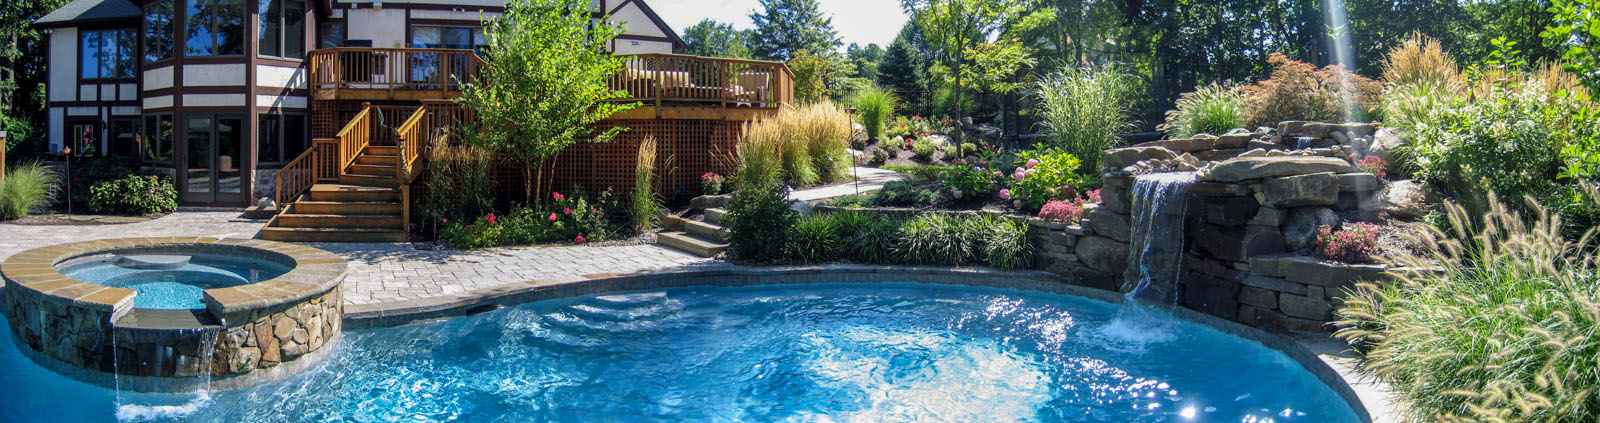 swimming pool with bluestone coping, spa, pool waterfall